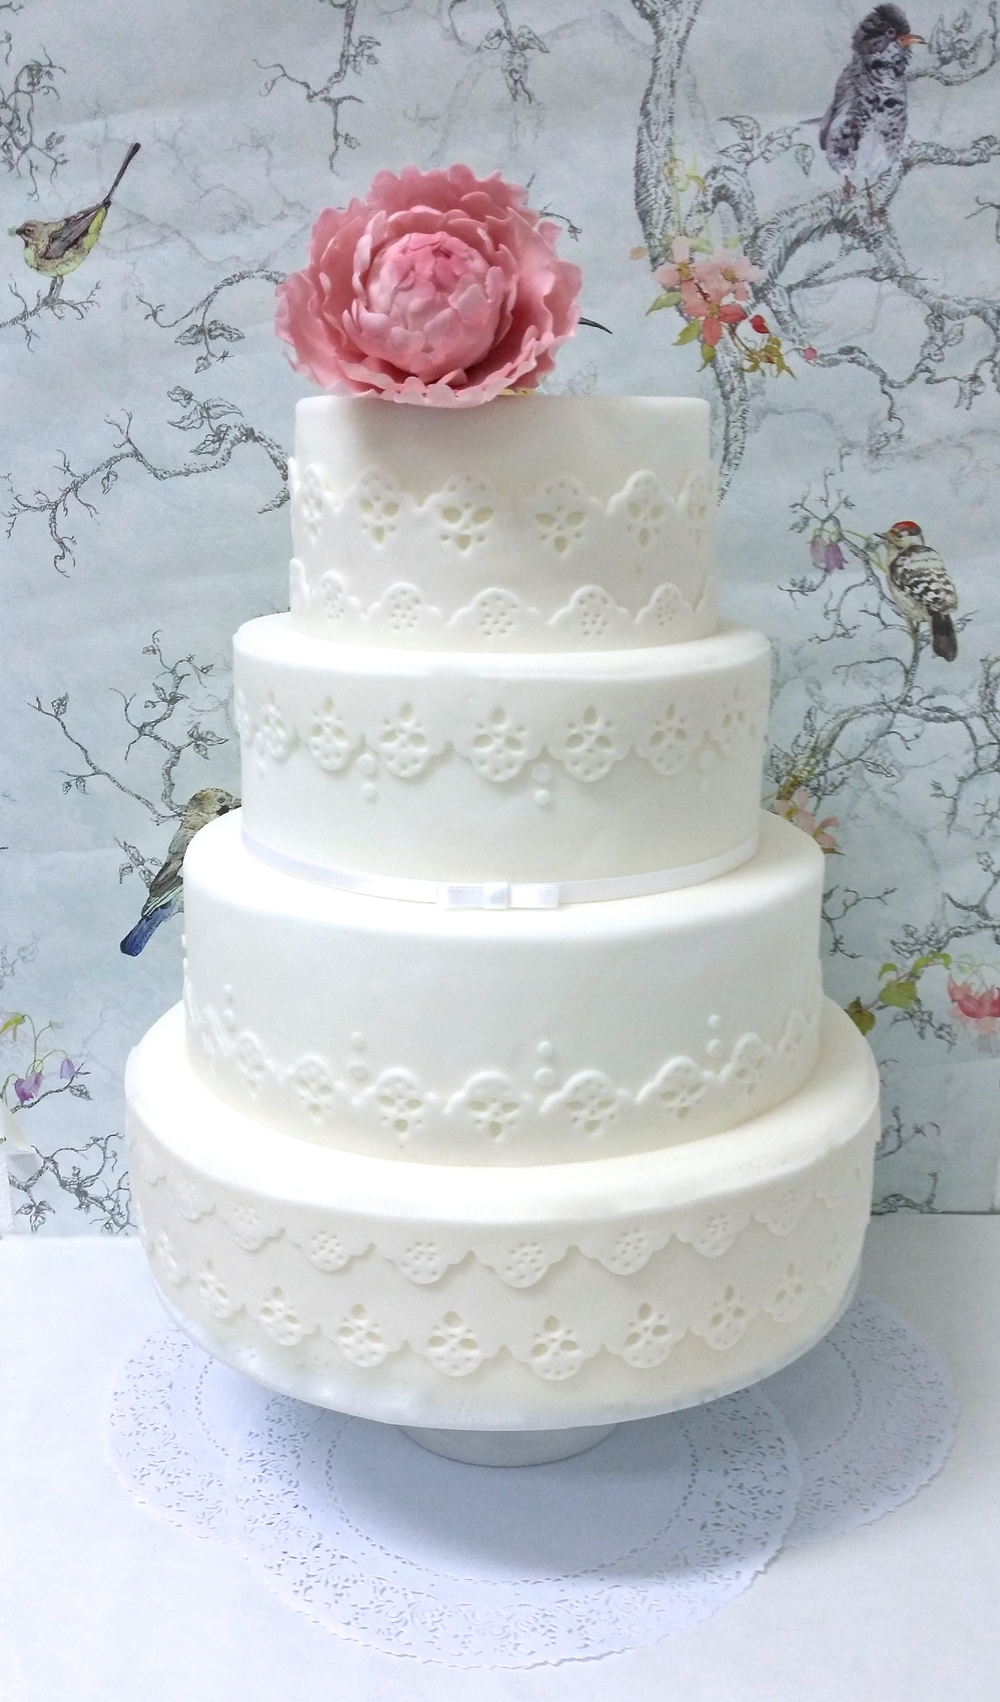 Customised Wedding Cakes - Not Available — Sweet Retreat